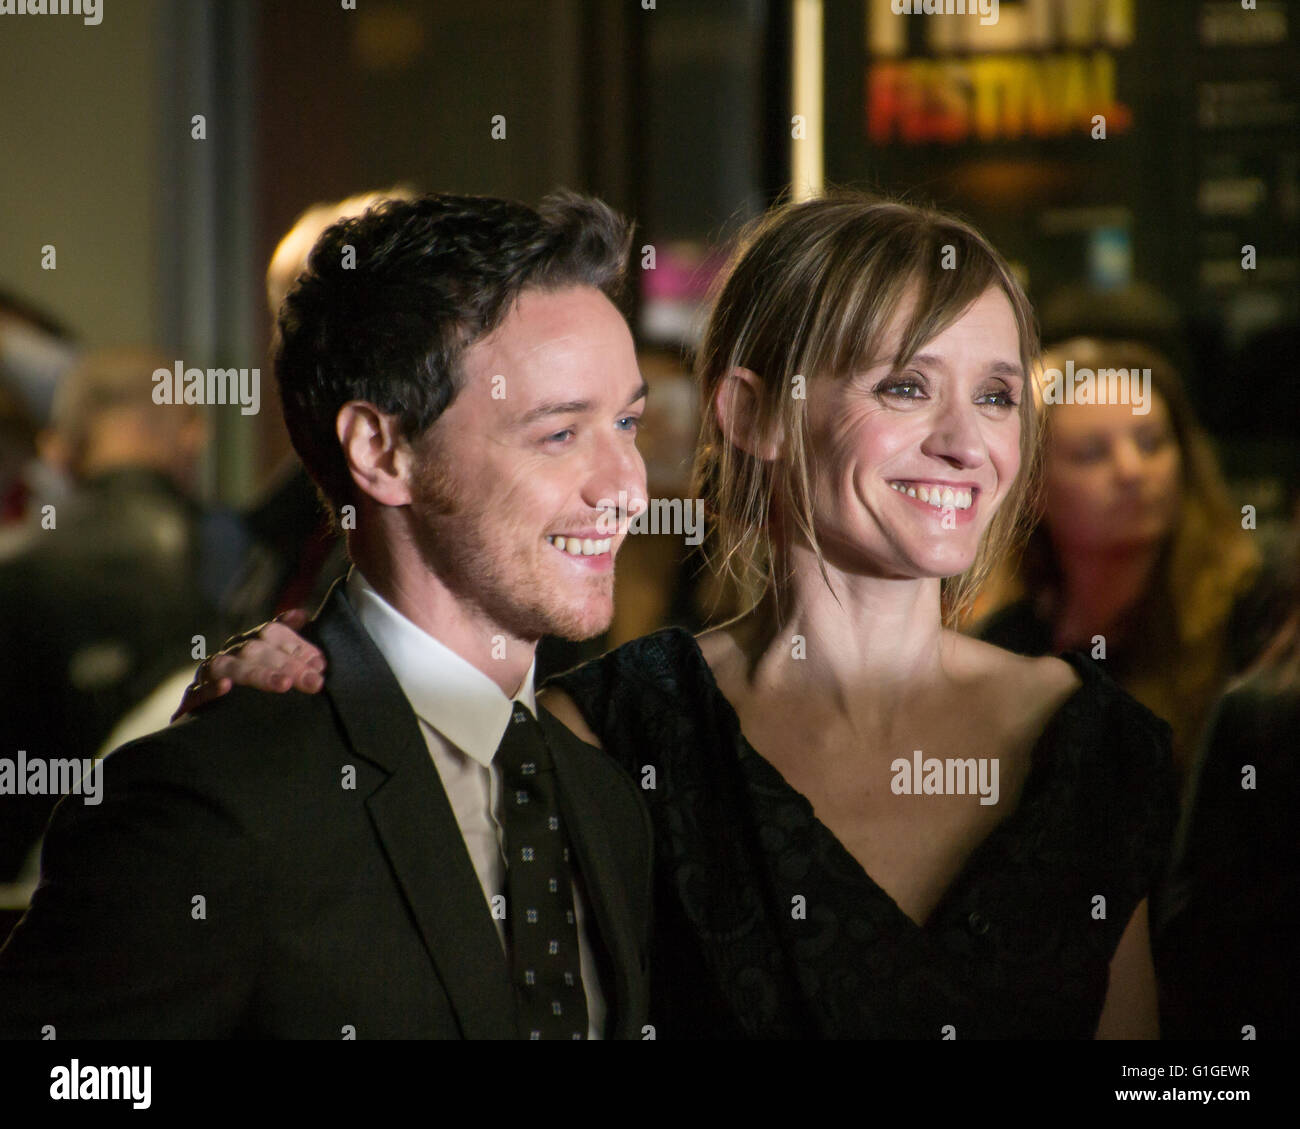 James McAvoy and Anne Marie-Duff  at the BFI London film festival.  2014. - Stock Image